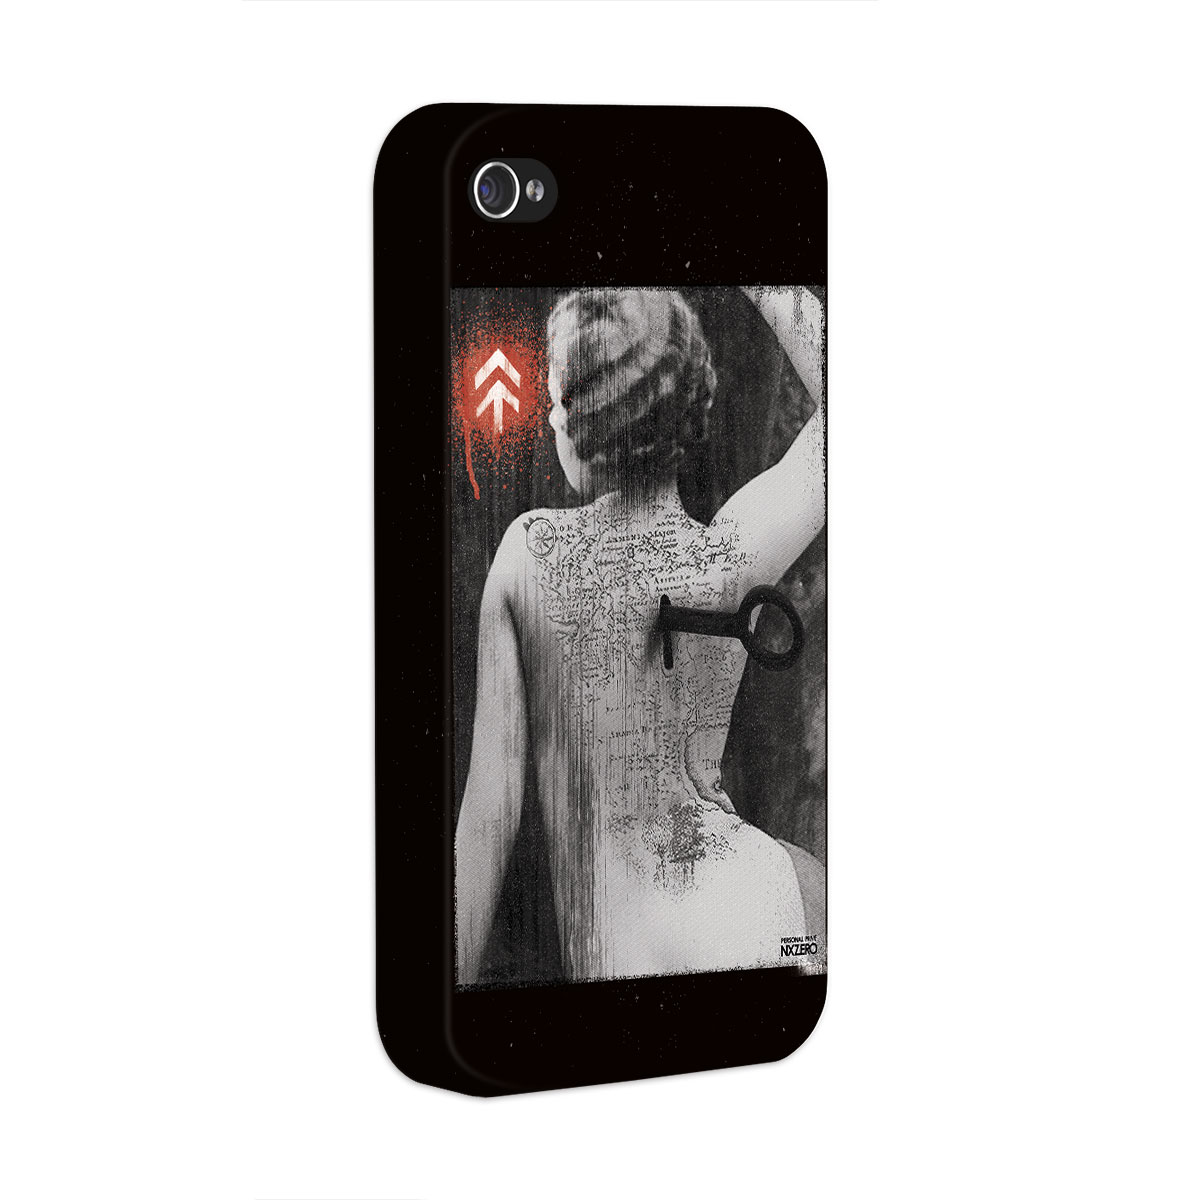 Capa para iPhone 4/4S NXZero Personal Prive